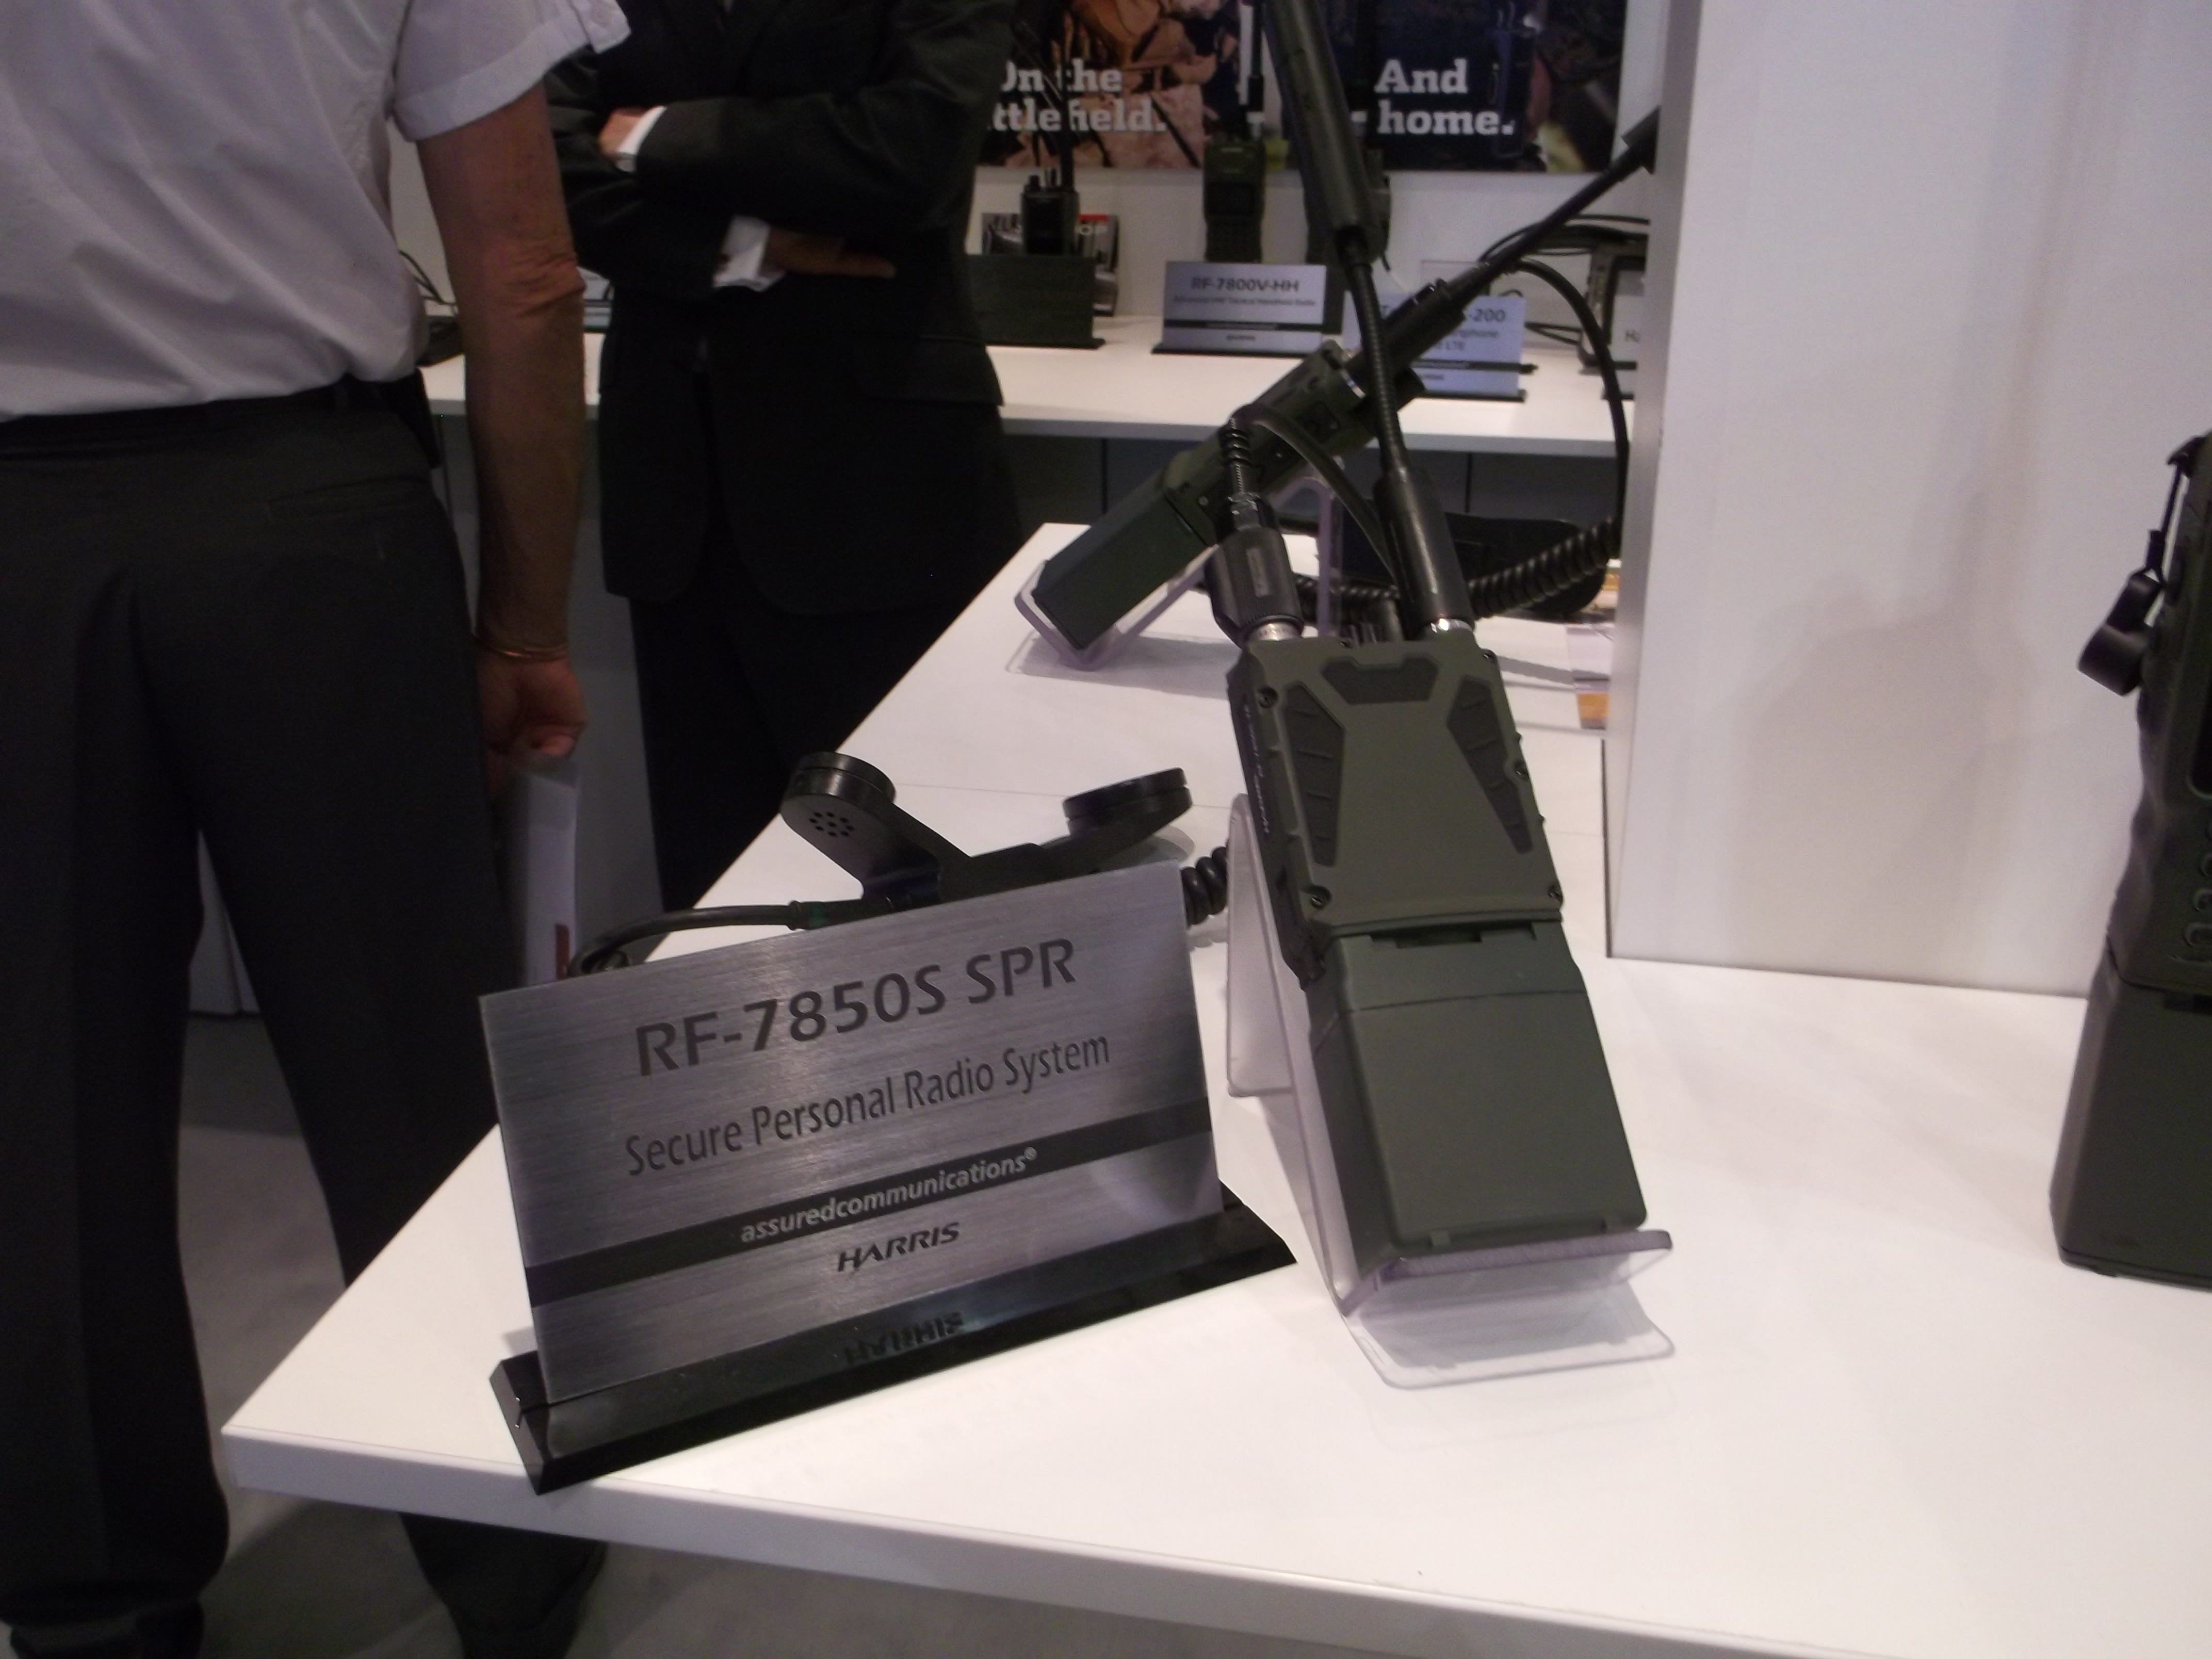 Harris showcased its RF-7850S radio